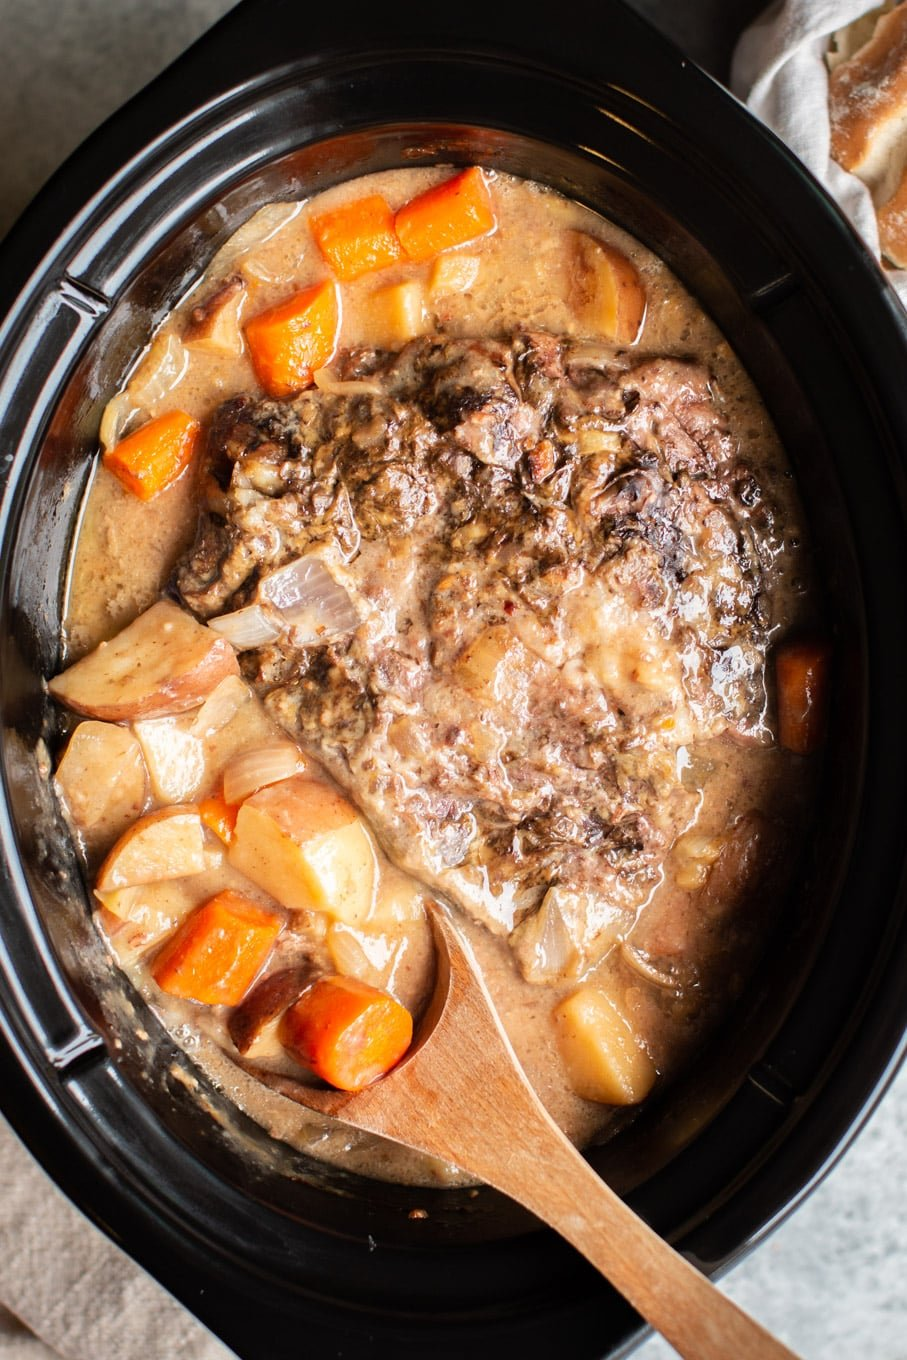 close up of pot roast in gravy in a slow cooker.